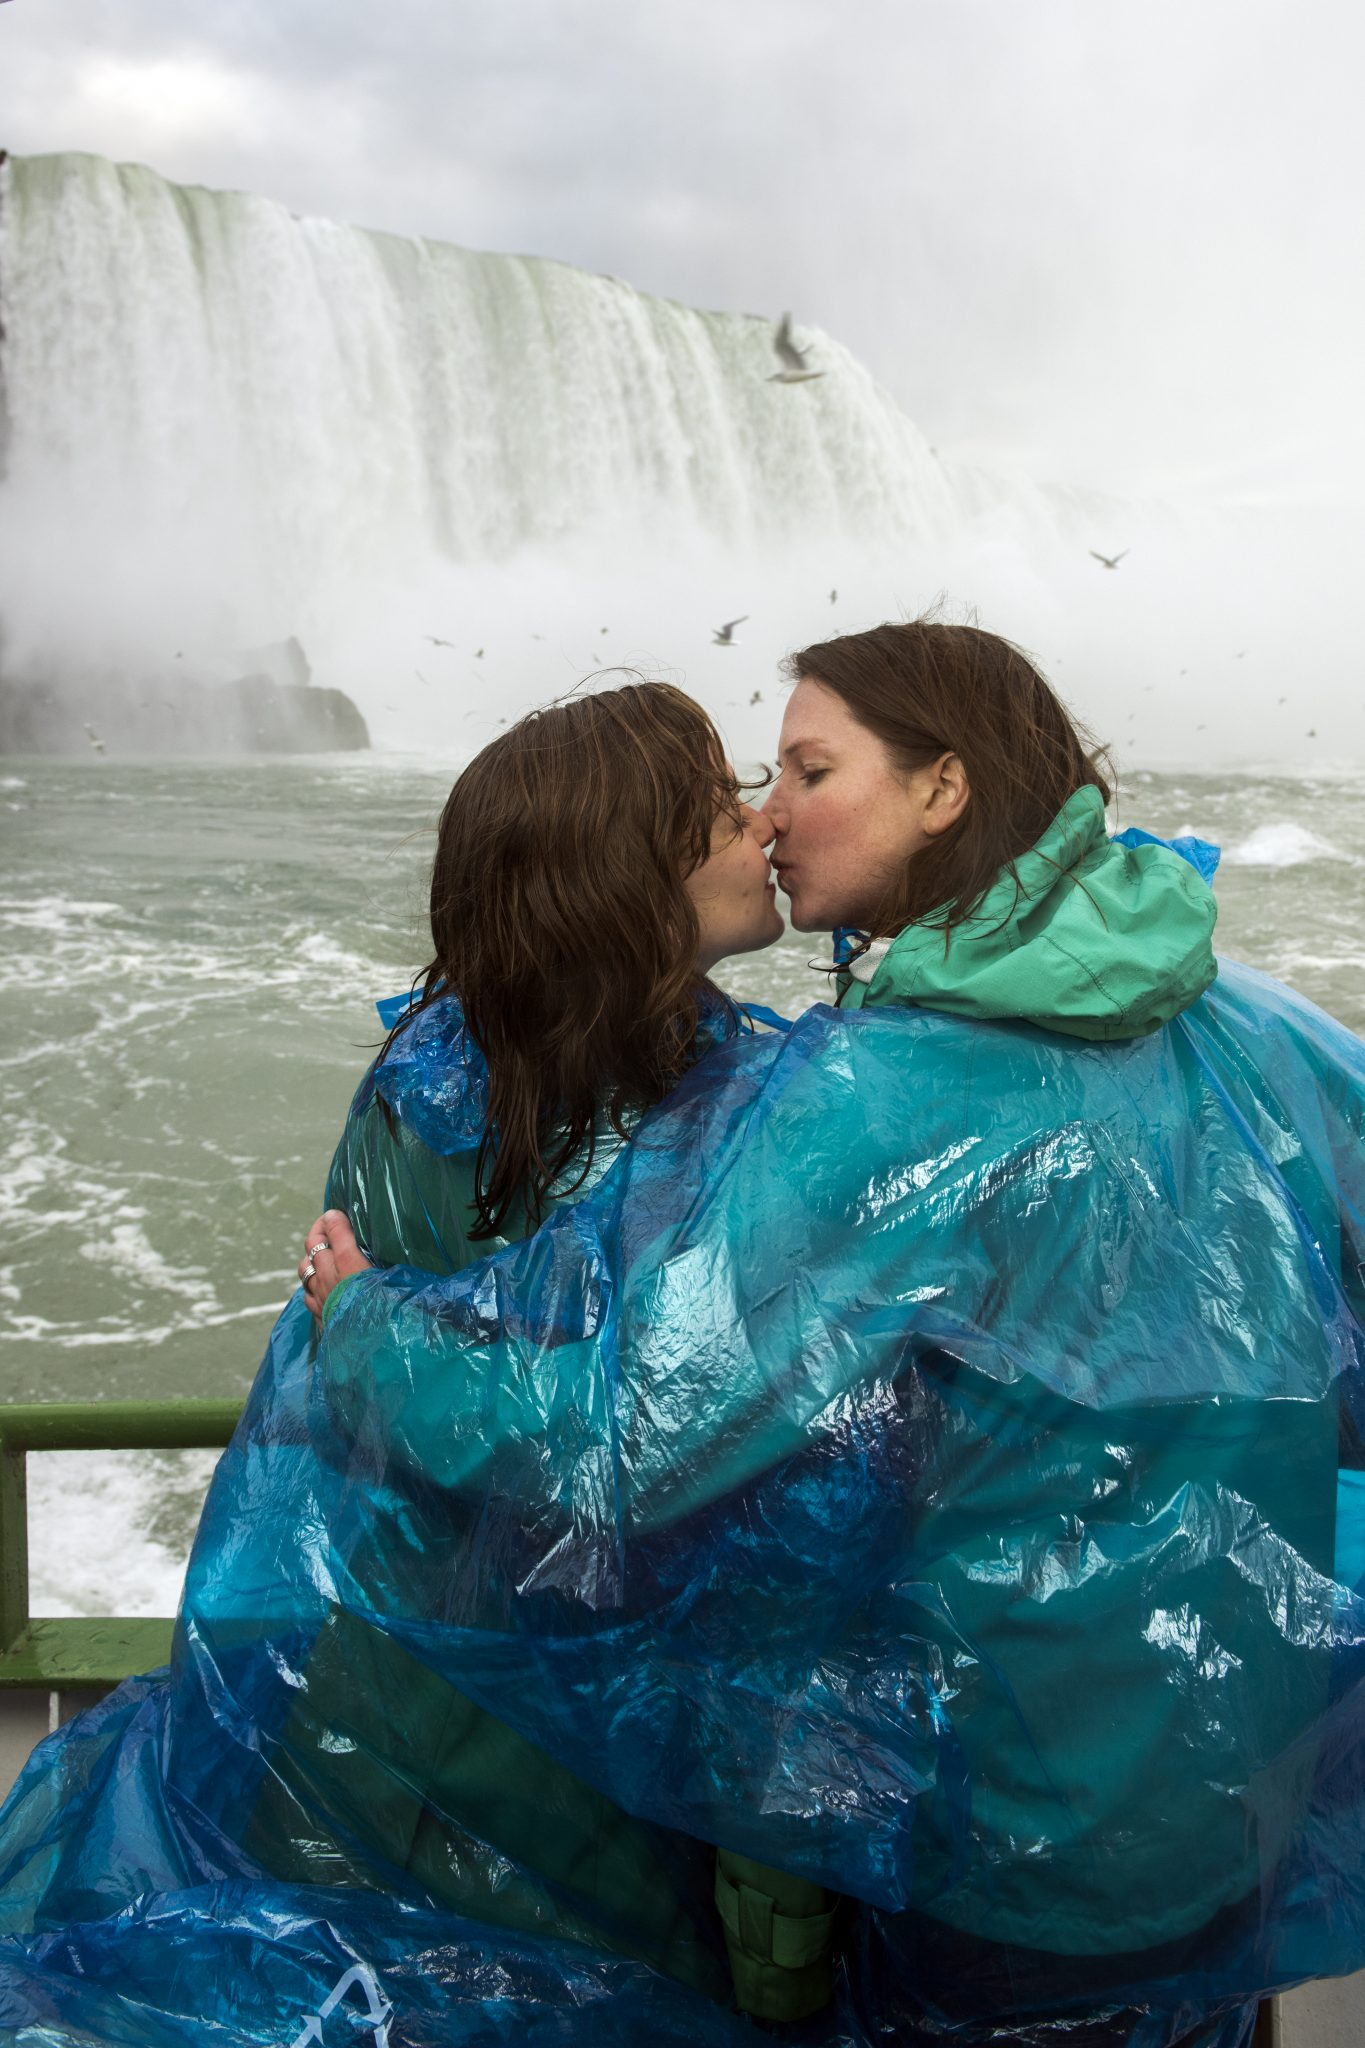 women kissing Niagara Falls